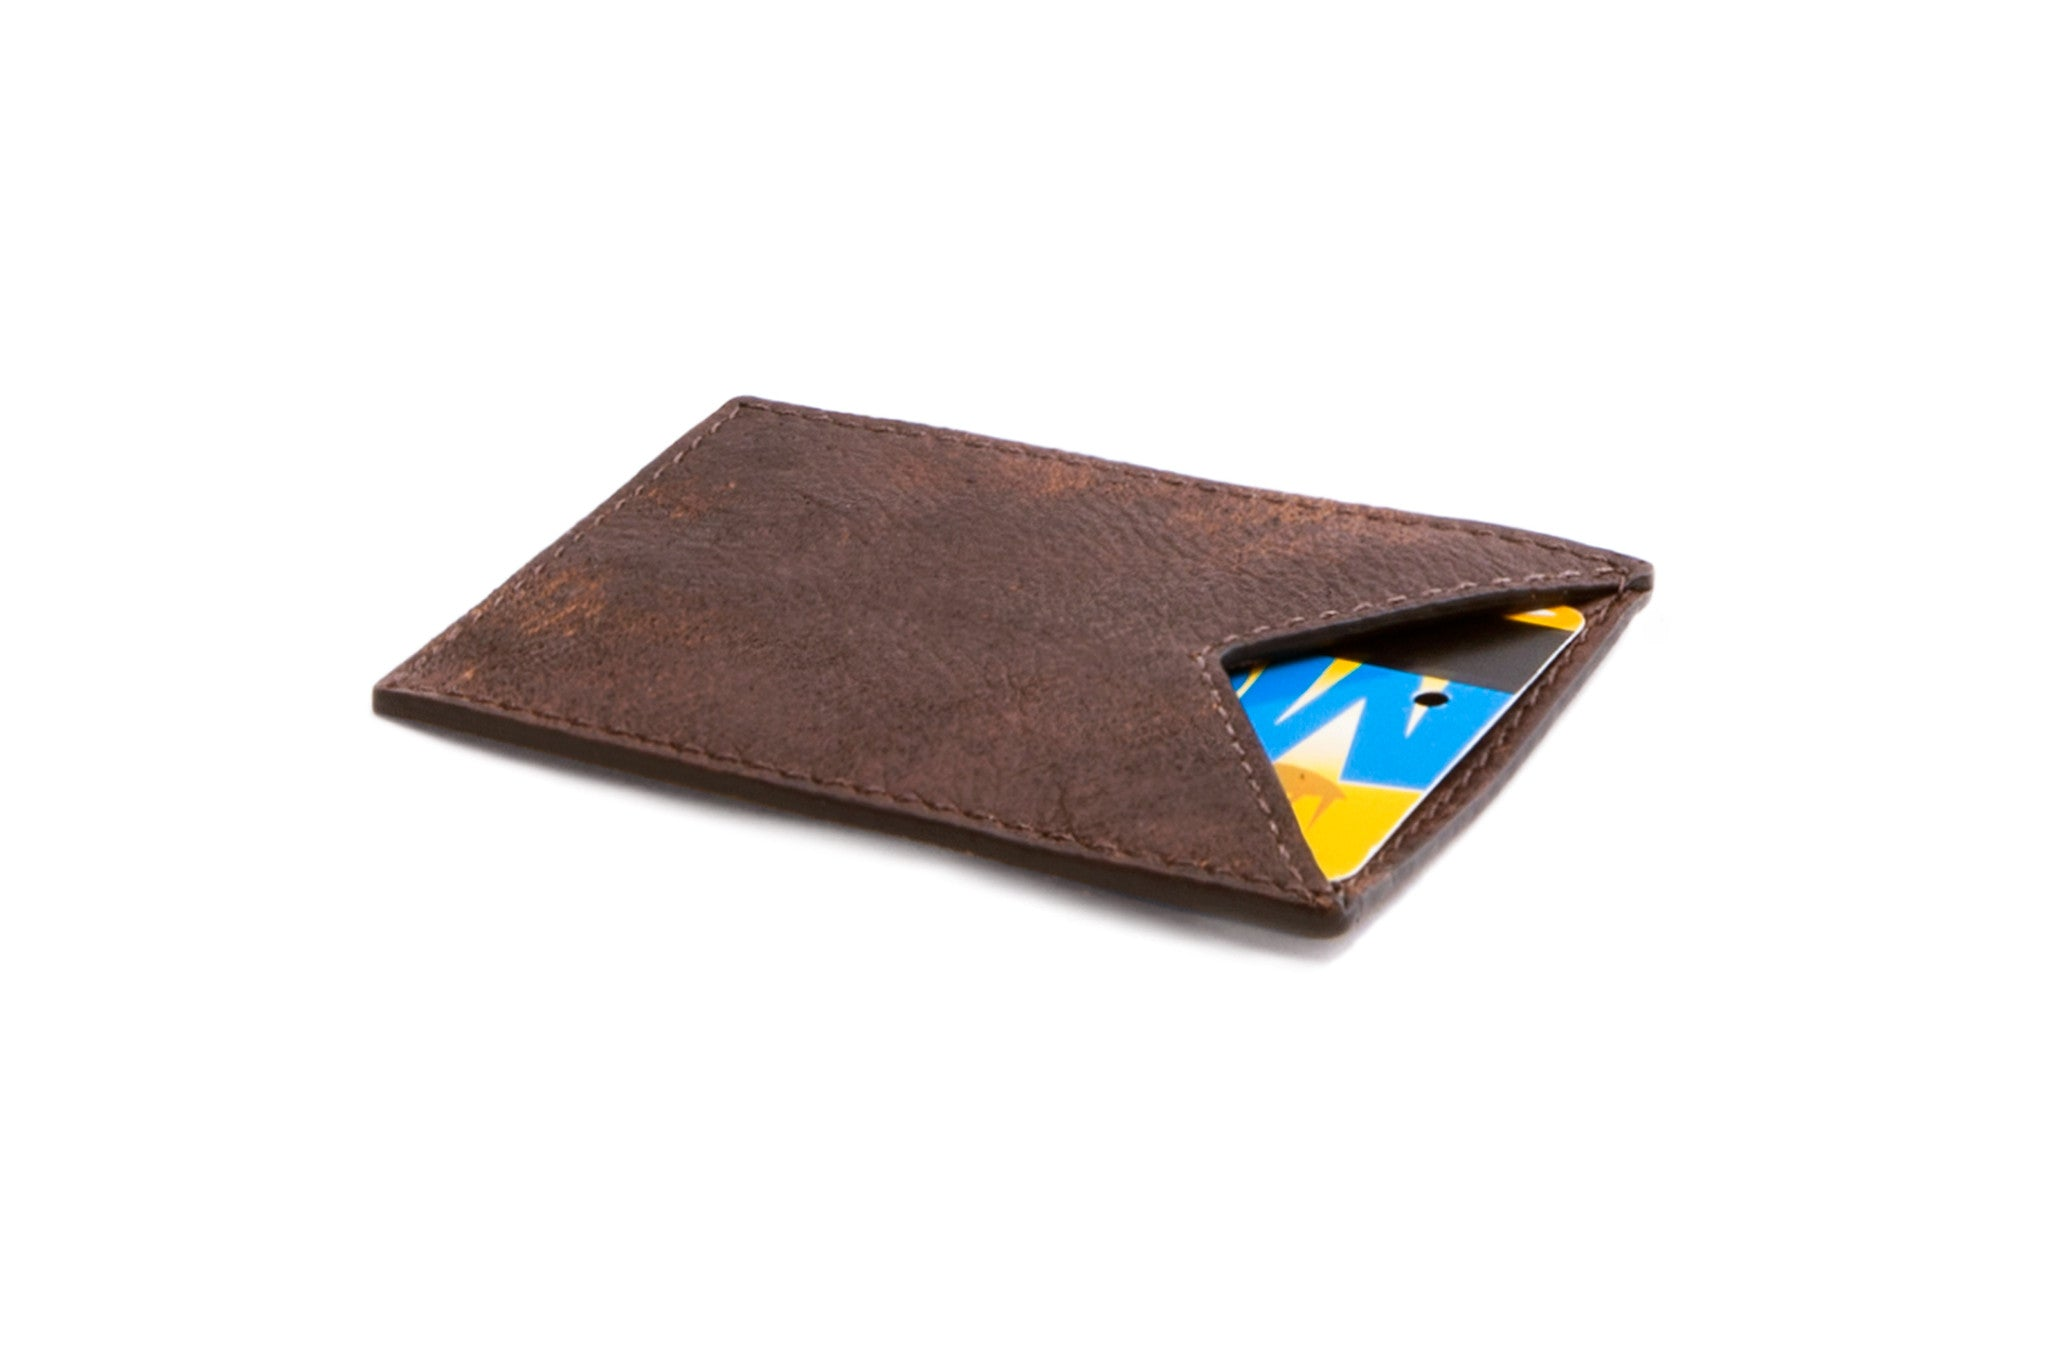 Leather Business Card Holder – Molly Shaheen